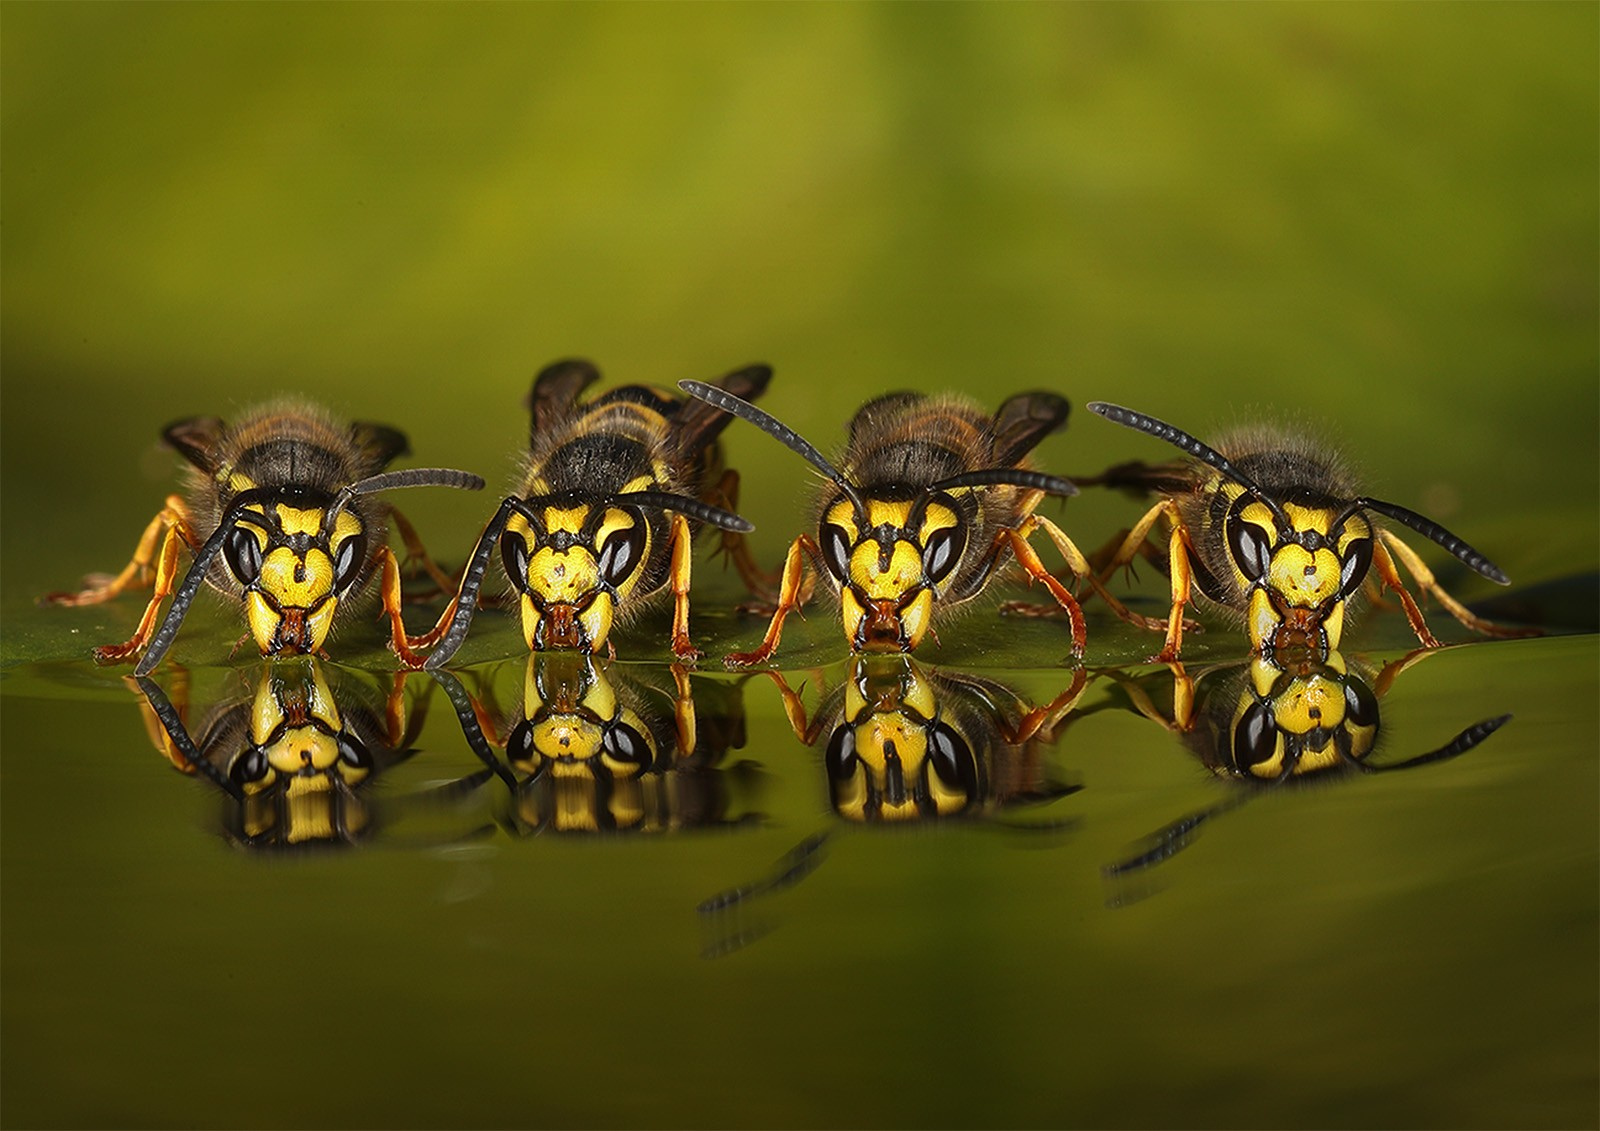 Roy Rimmer_Four Wasps